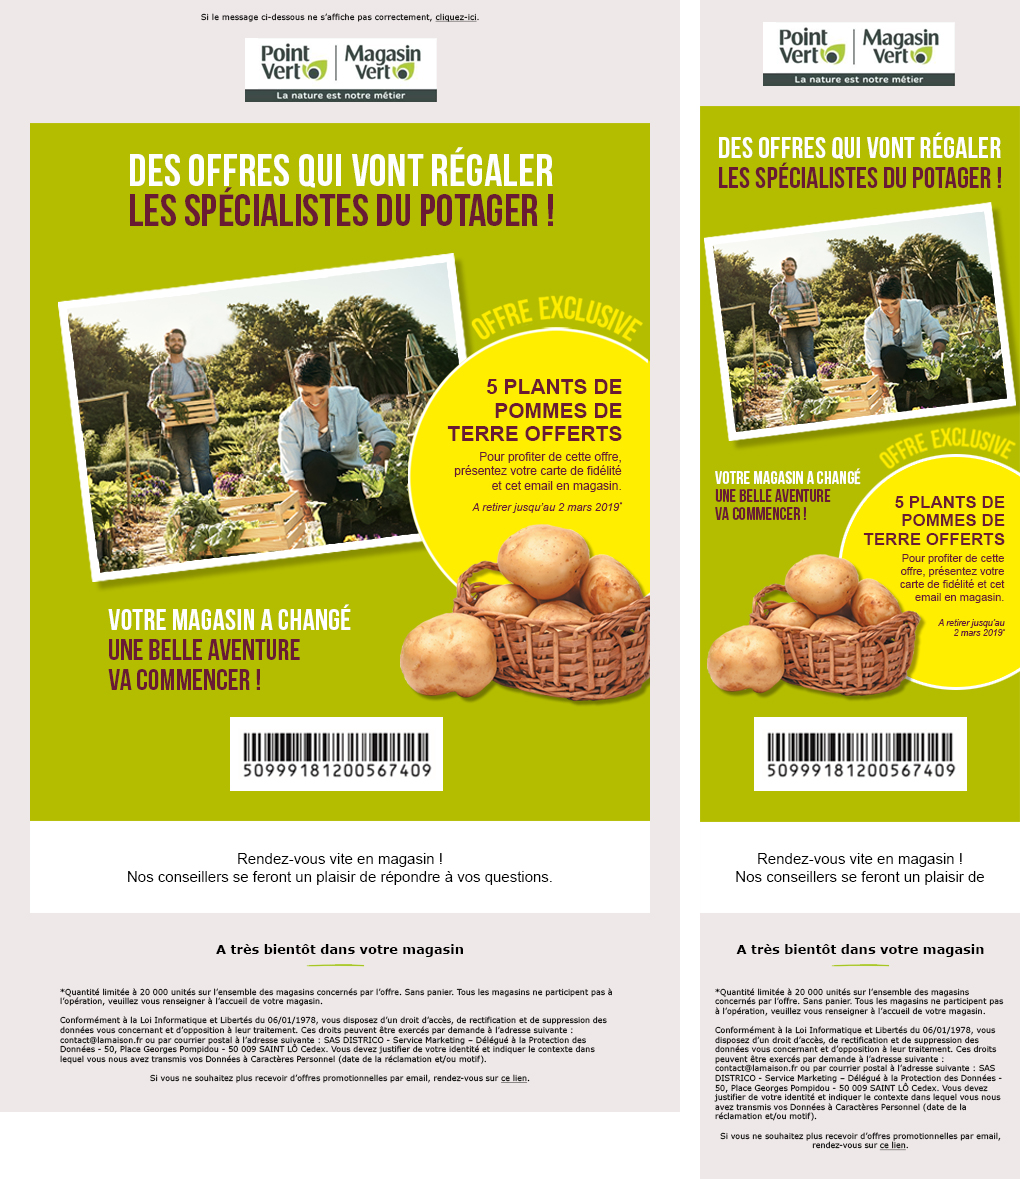 Districo_Potager_Email_PointVert